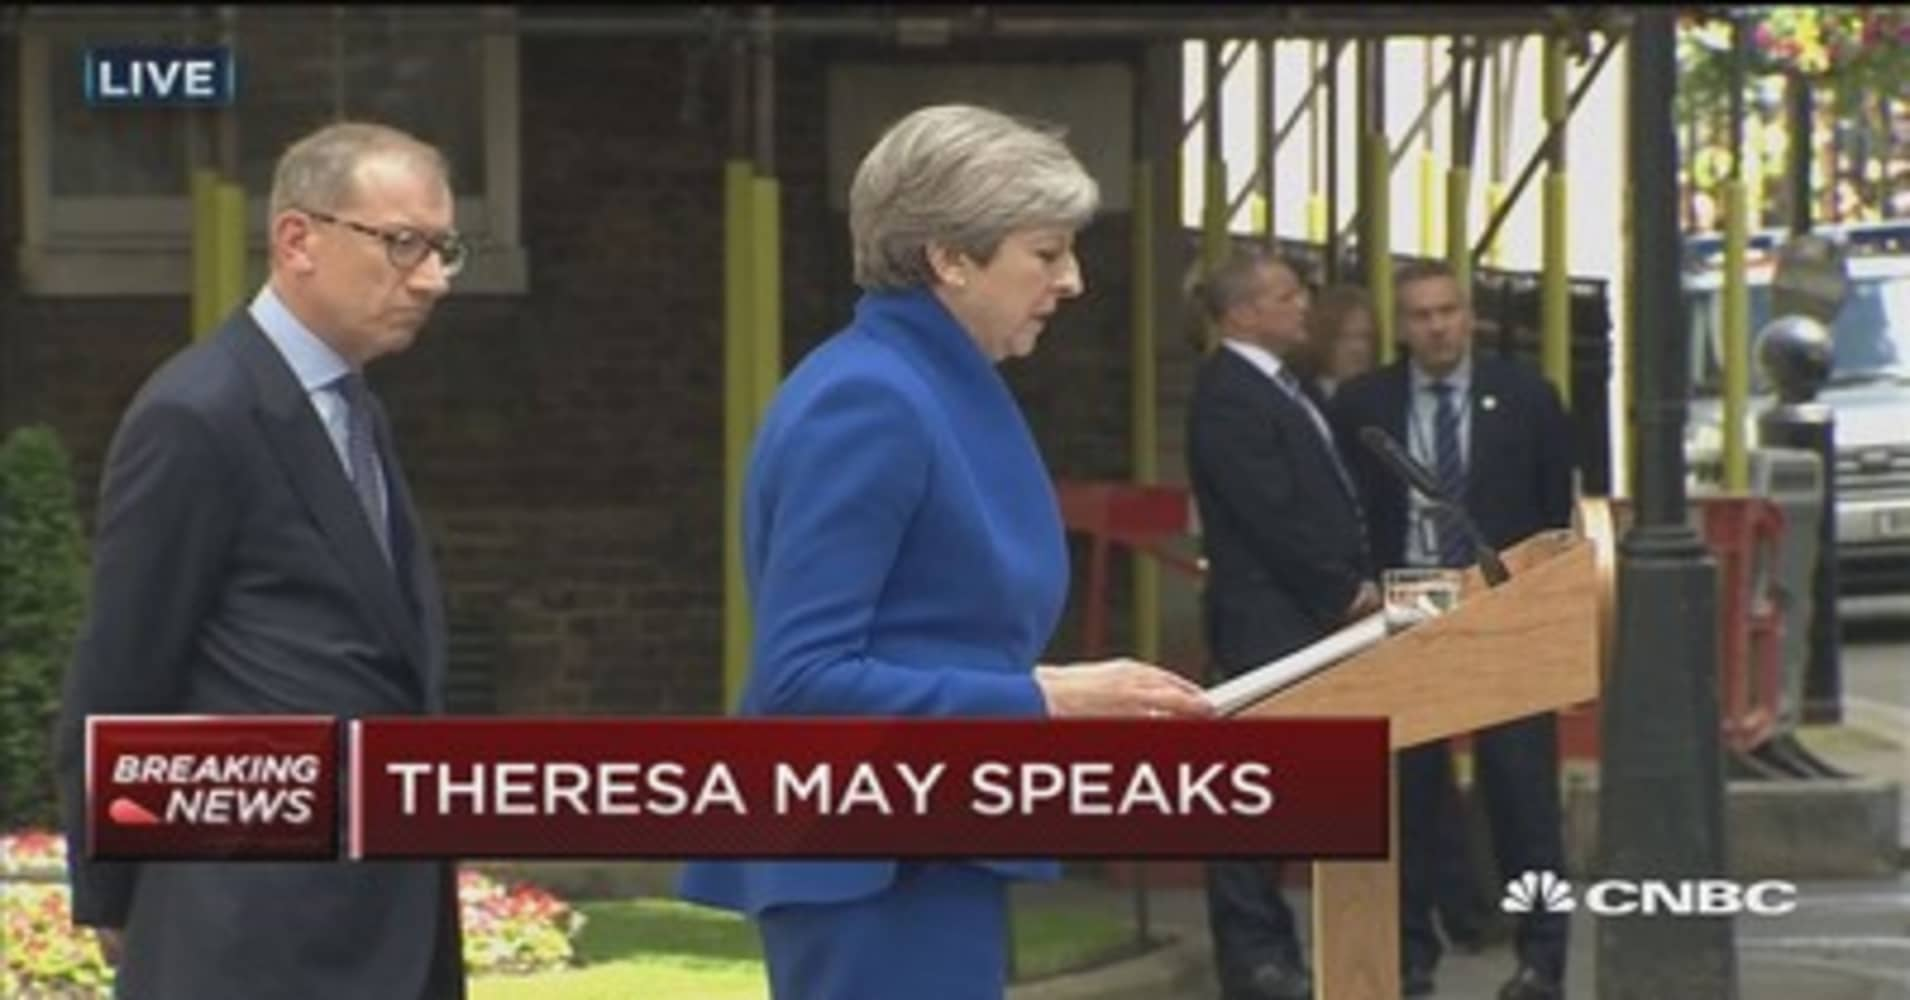 UK leader May: I will form a government to provide certainty